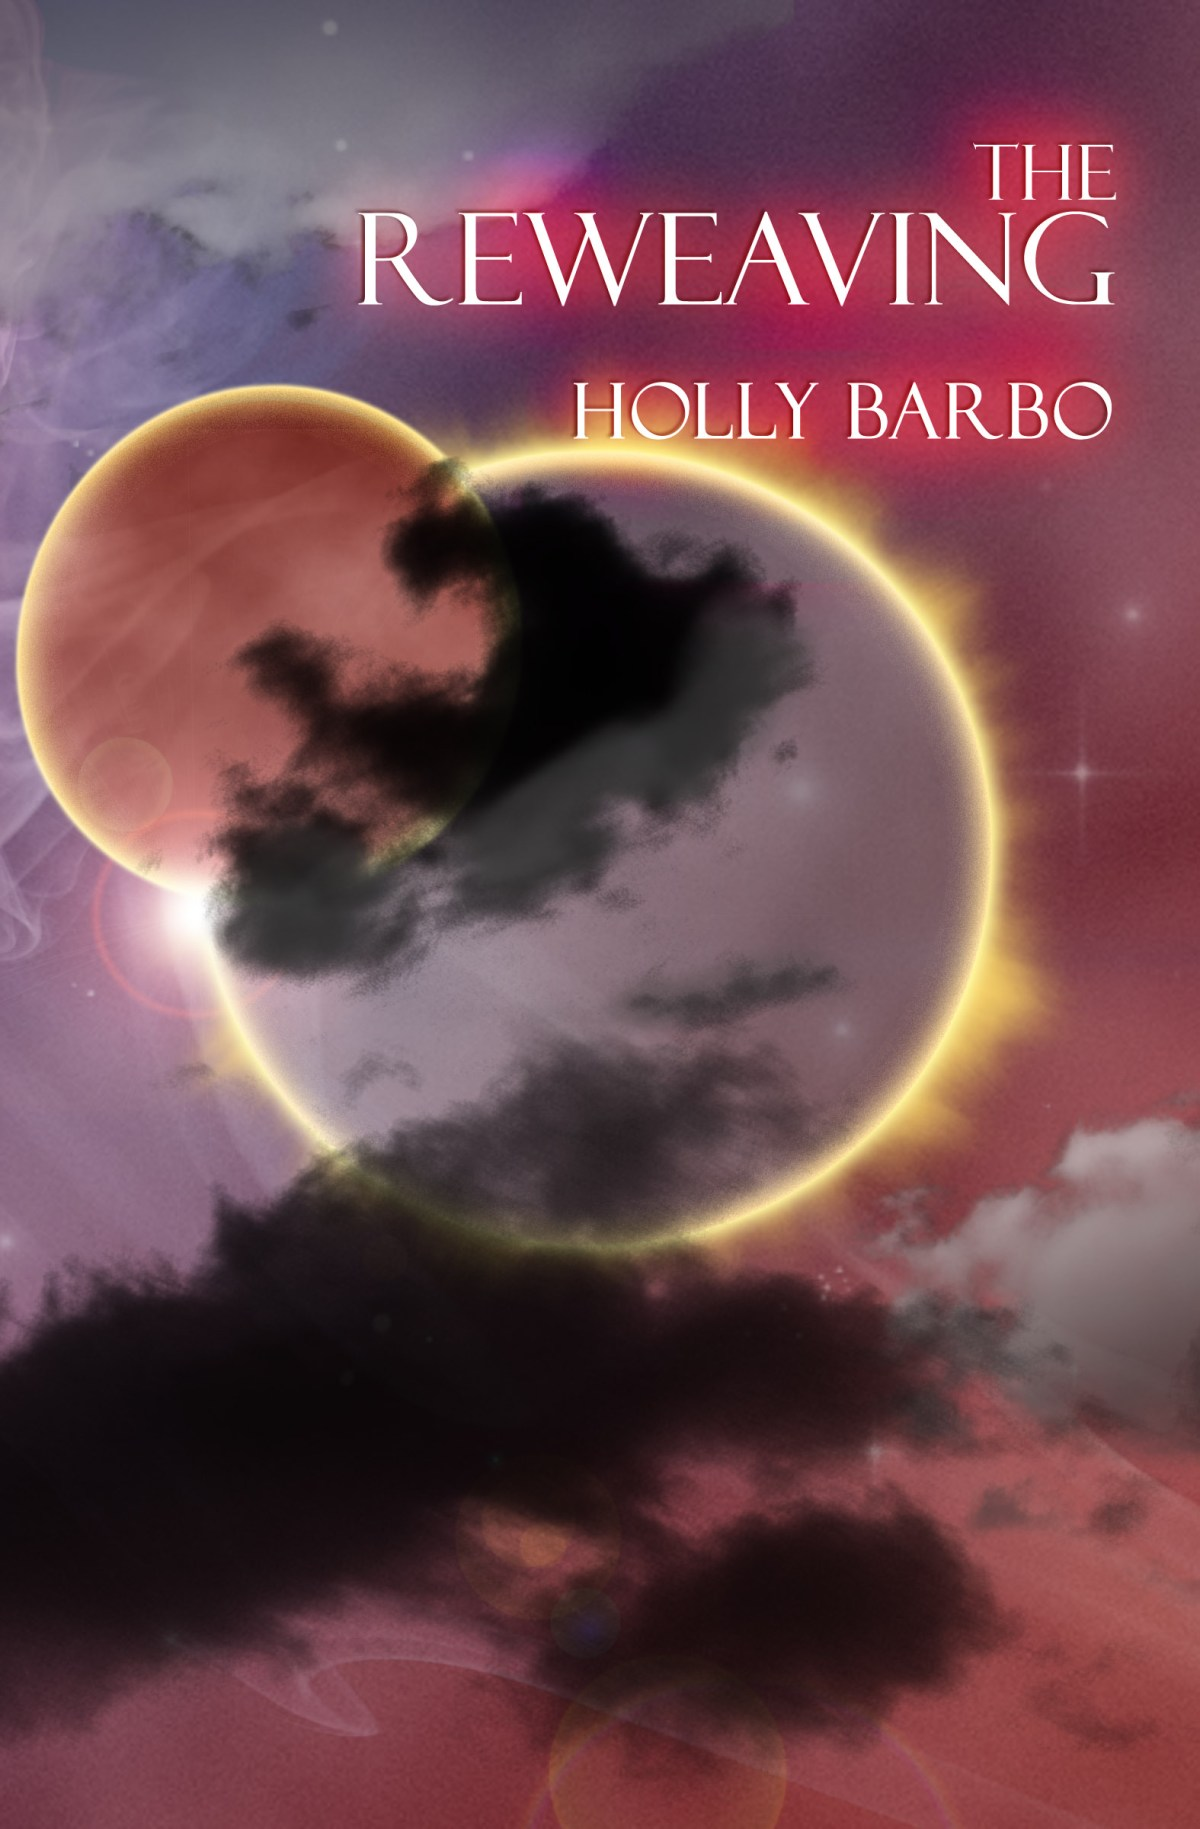 The Reweaving by Holly Barbo